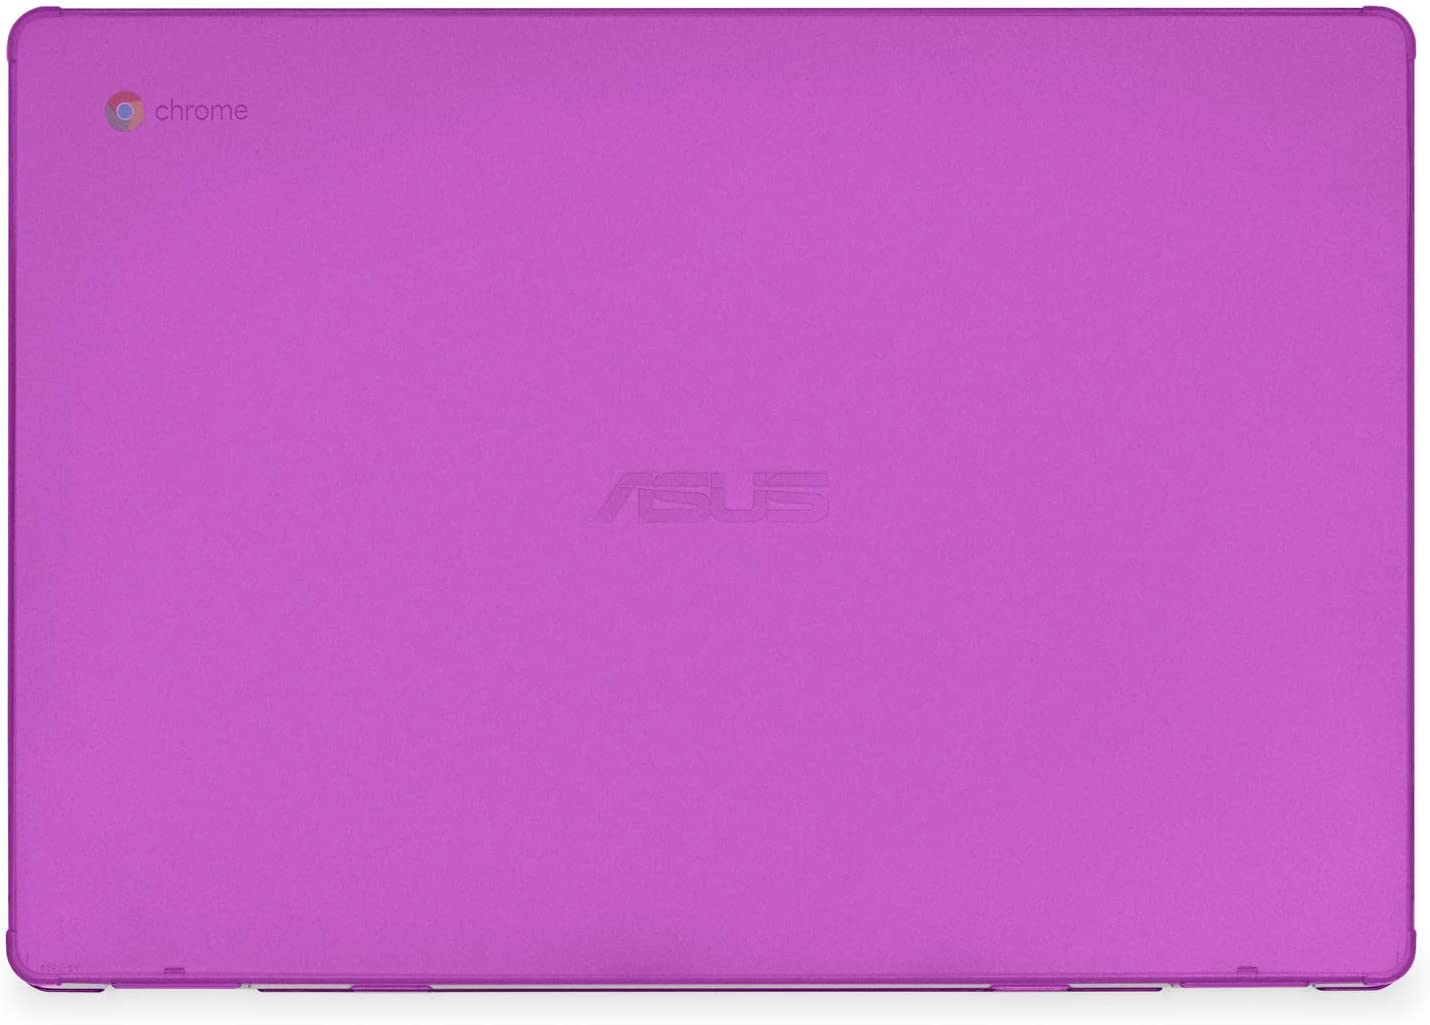 mCover Hard Shell Case for 15.6-inch ASUS Chromebook C523NA Series Laptop - ASUS C523 Purple